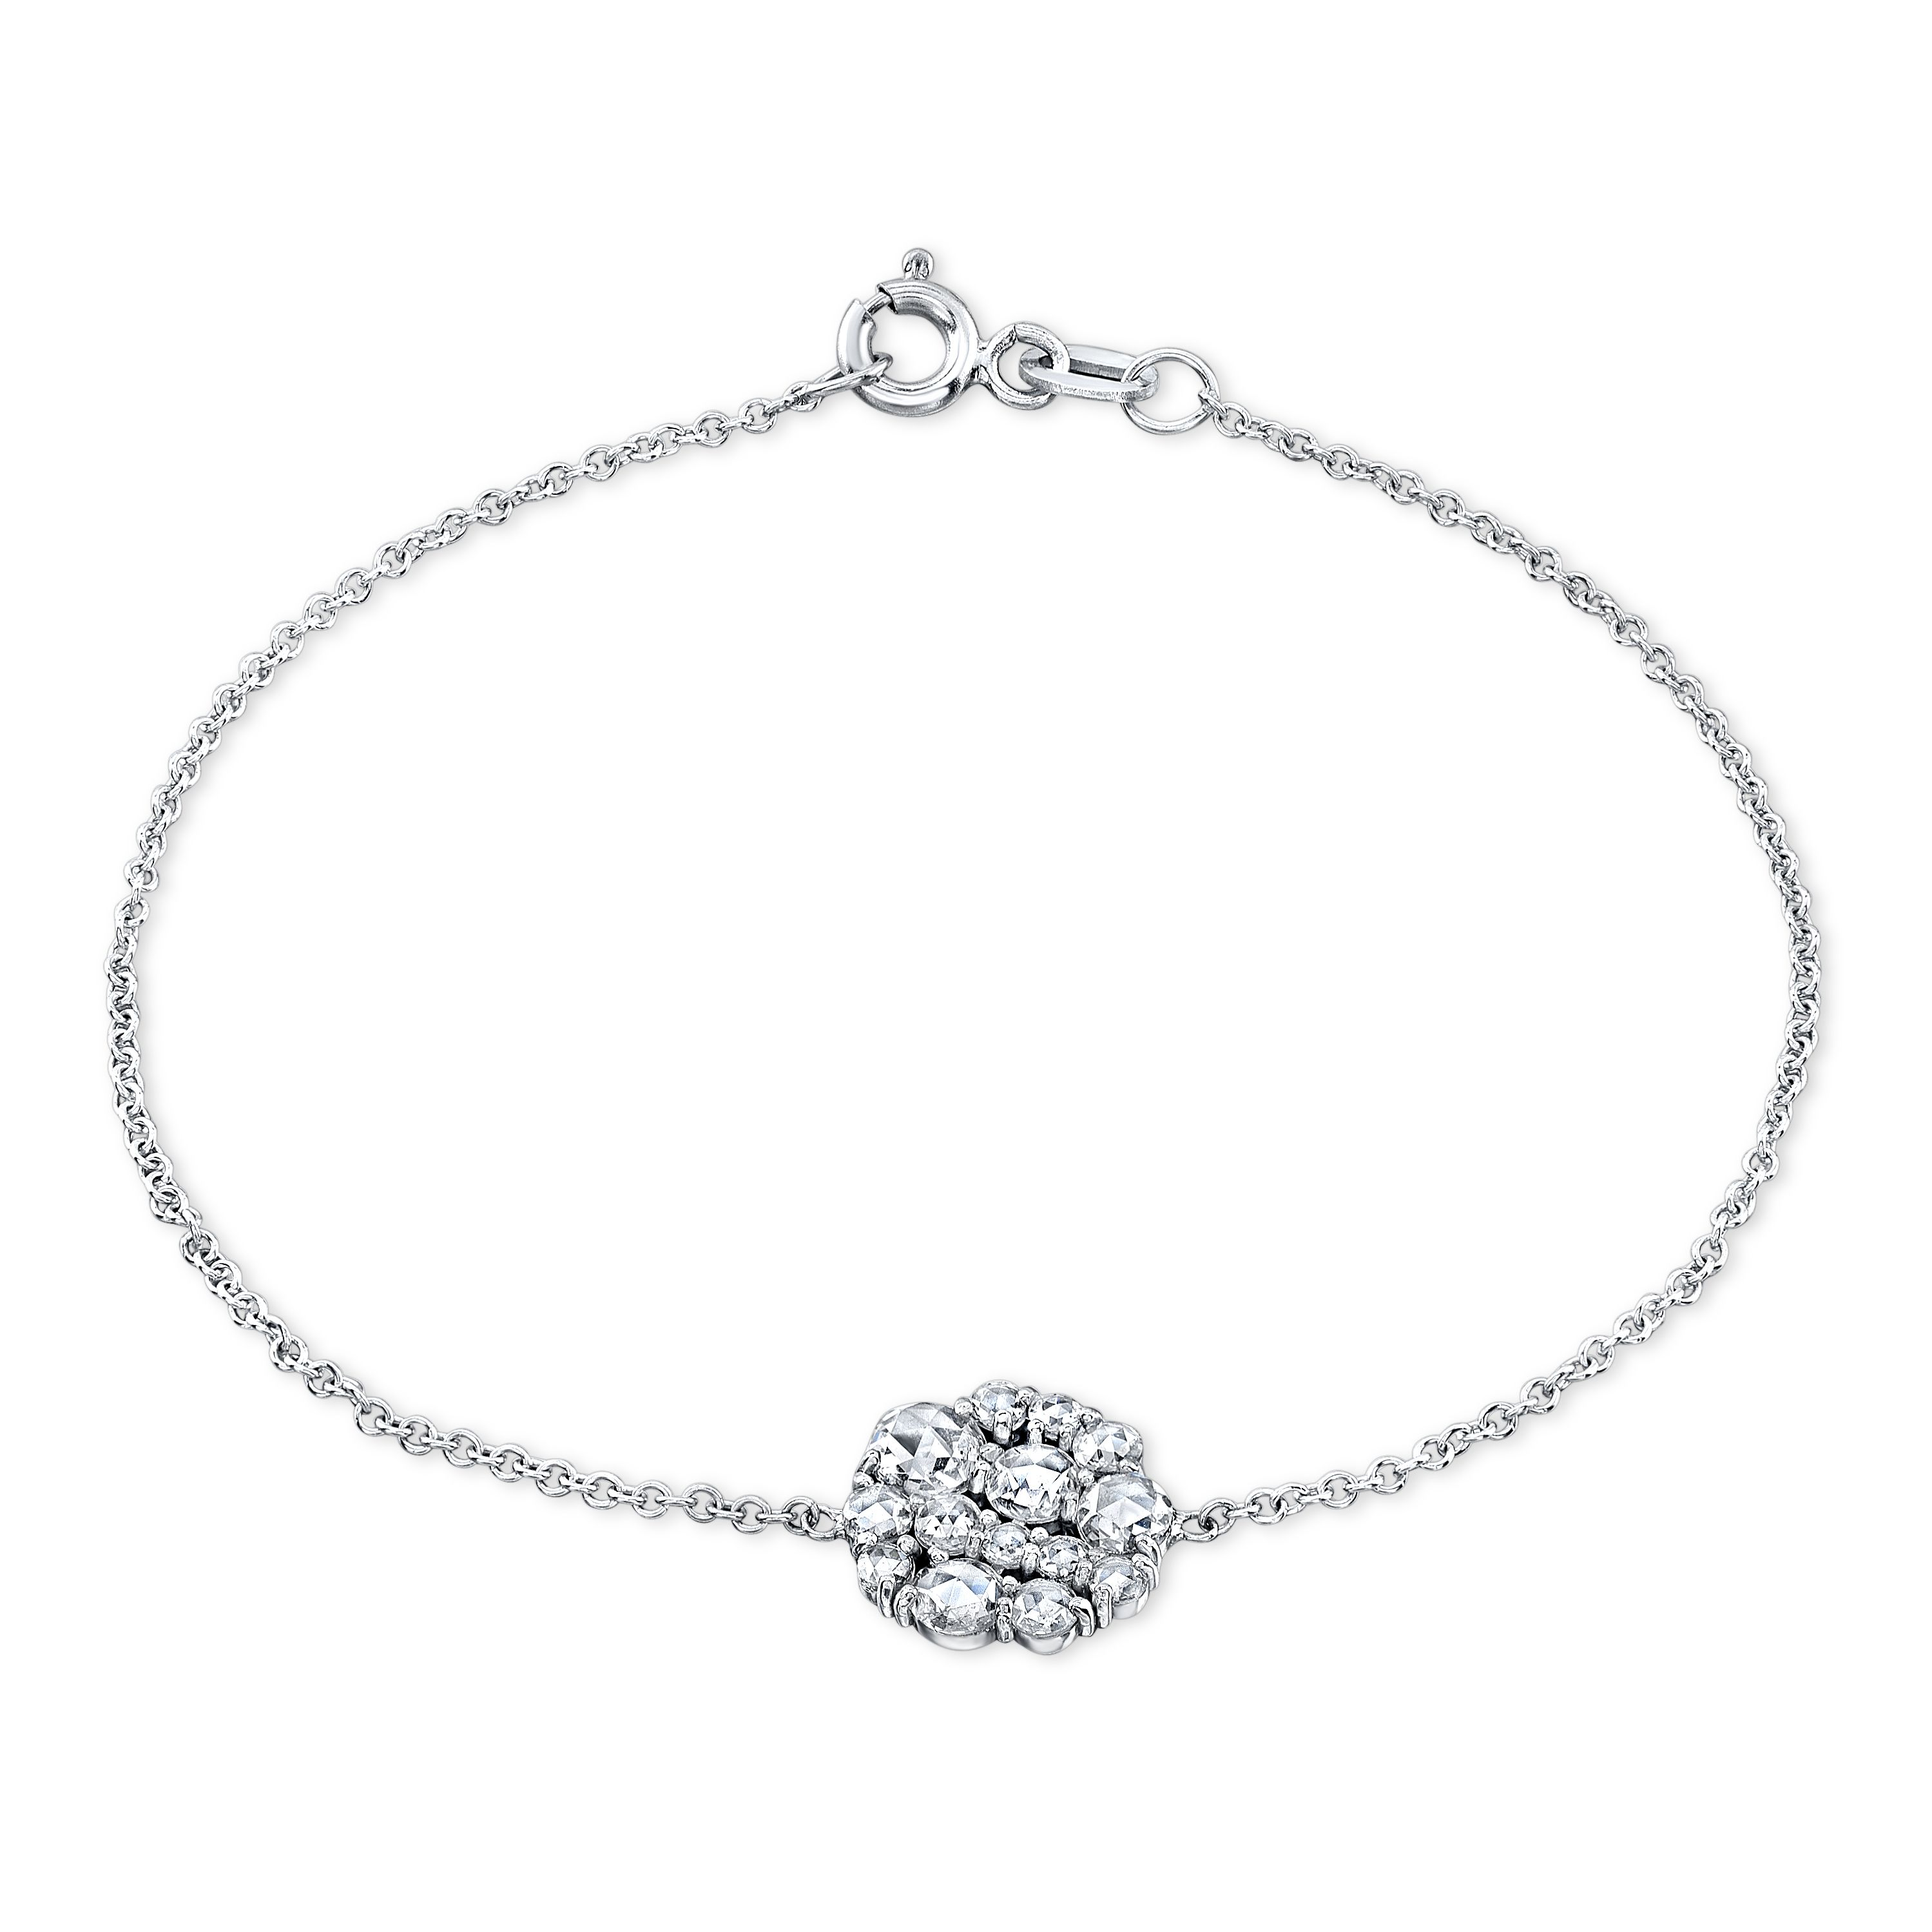 K white gold rose cut diamond cluster bracelet susan foster